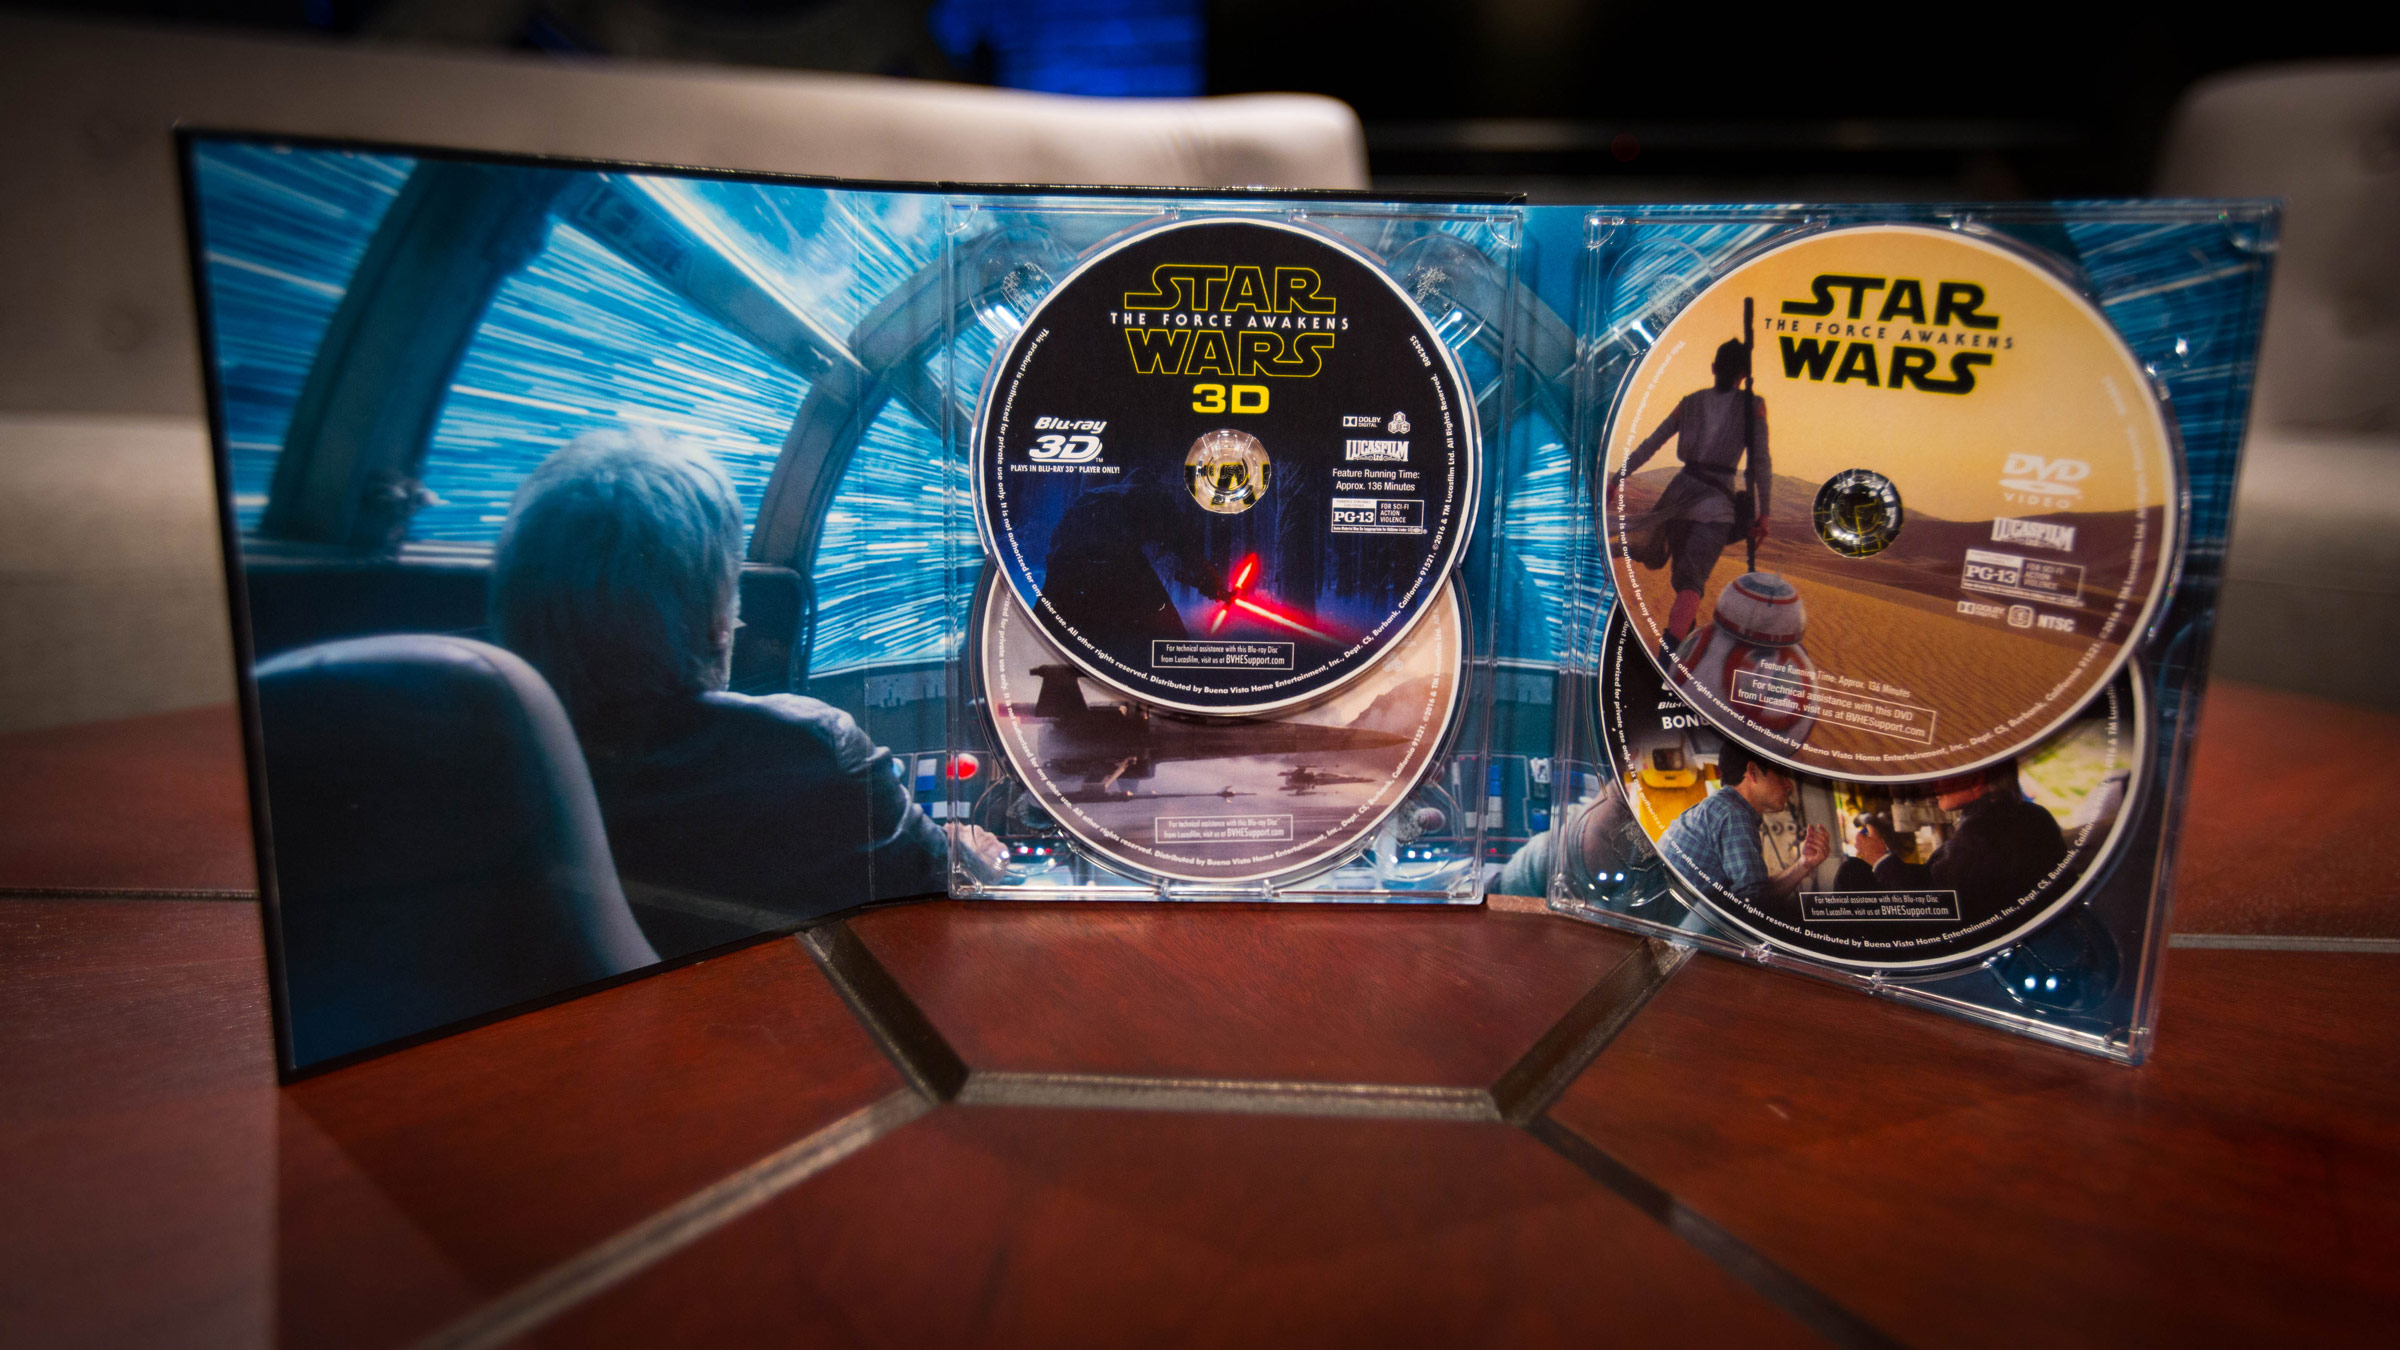 New star wars: the force awakens blu-ray/dvd coming, includes more.